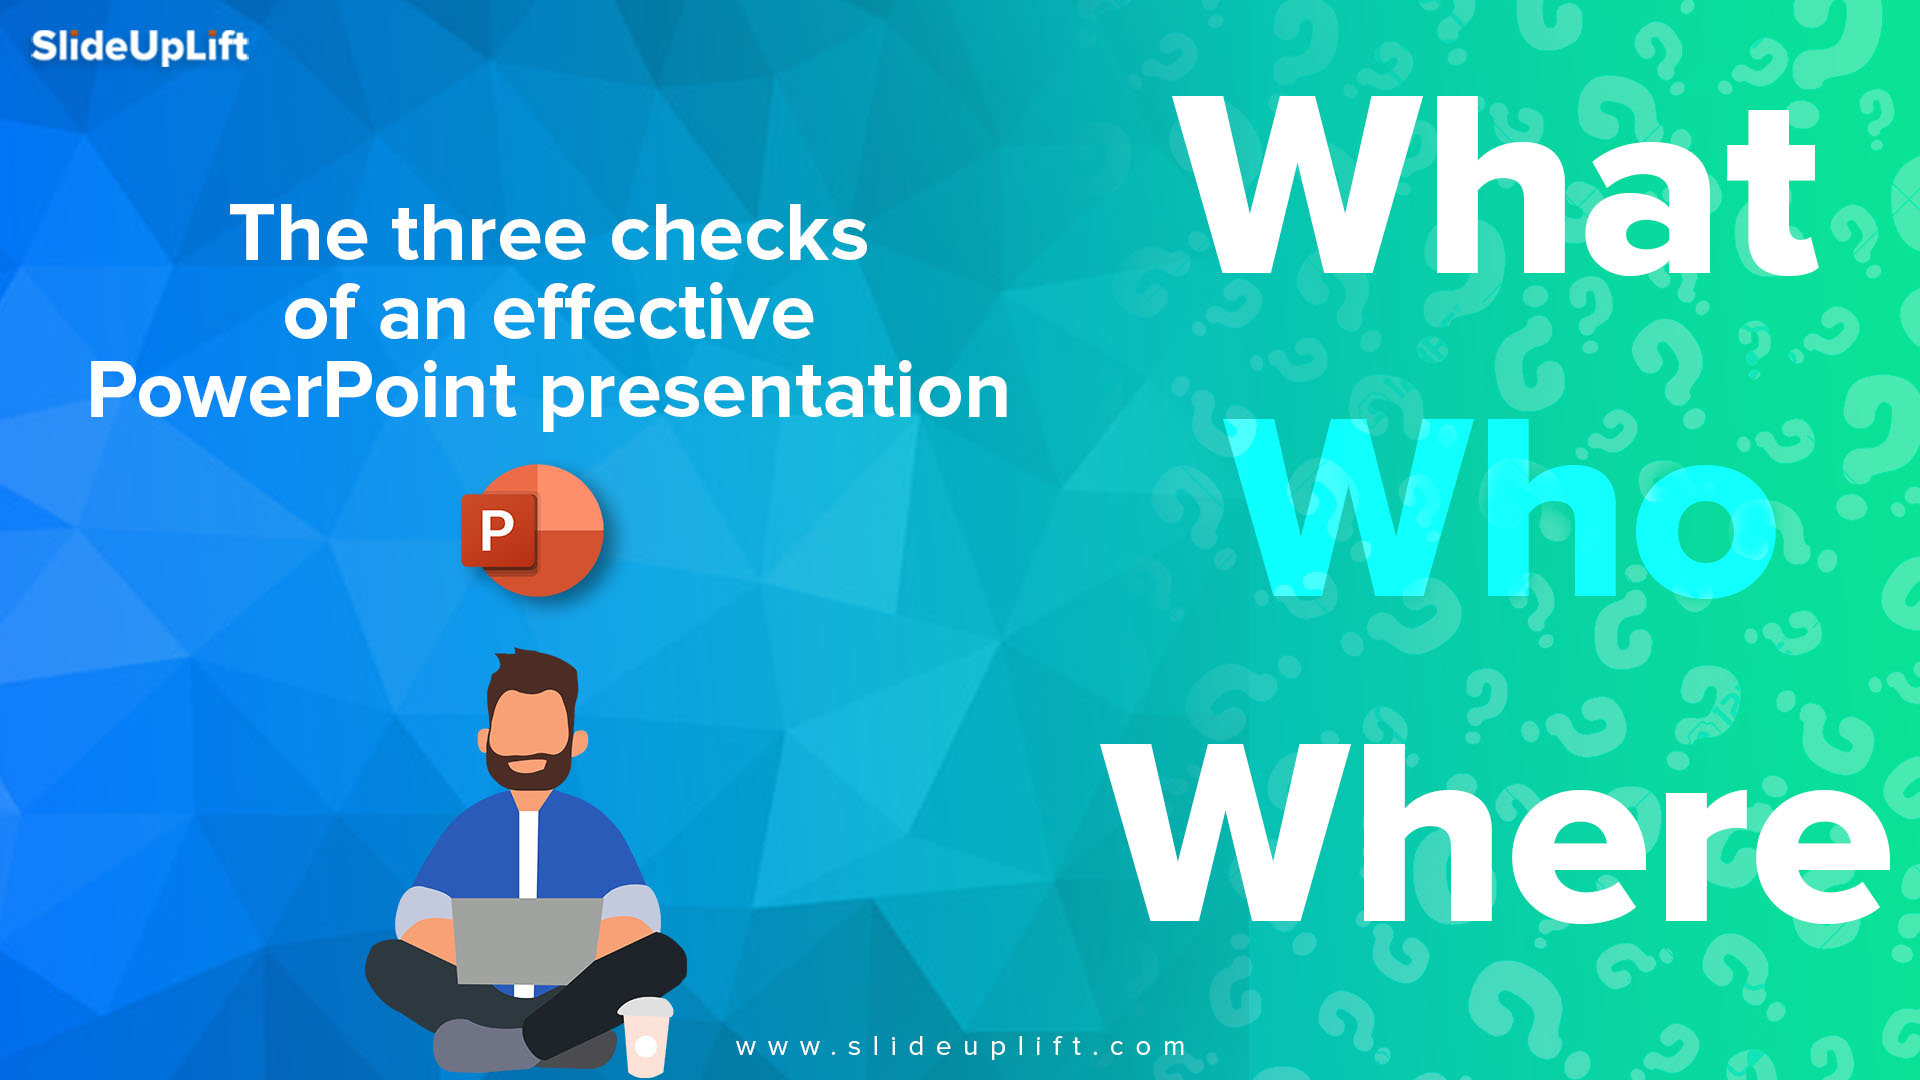 WHO, WHAT And WHERE – The Three Checks Of An Effective PowerPoint Presentation